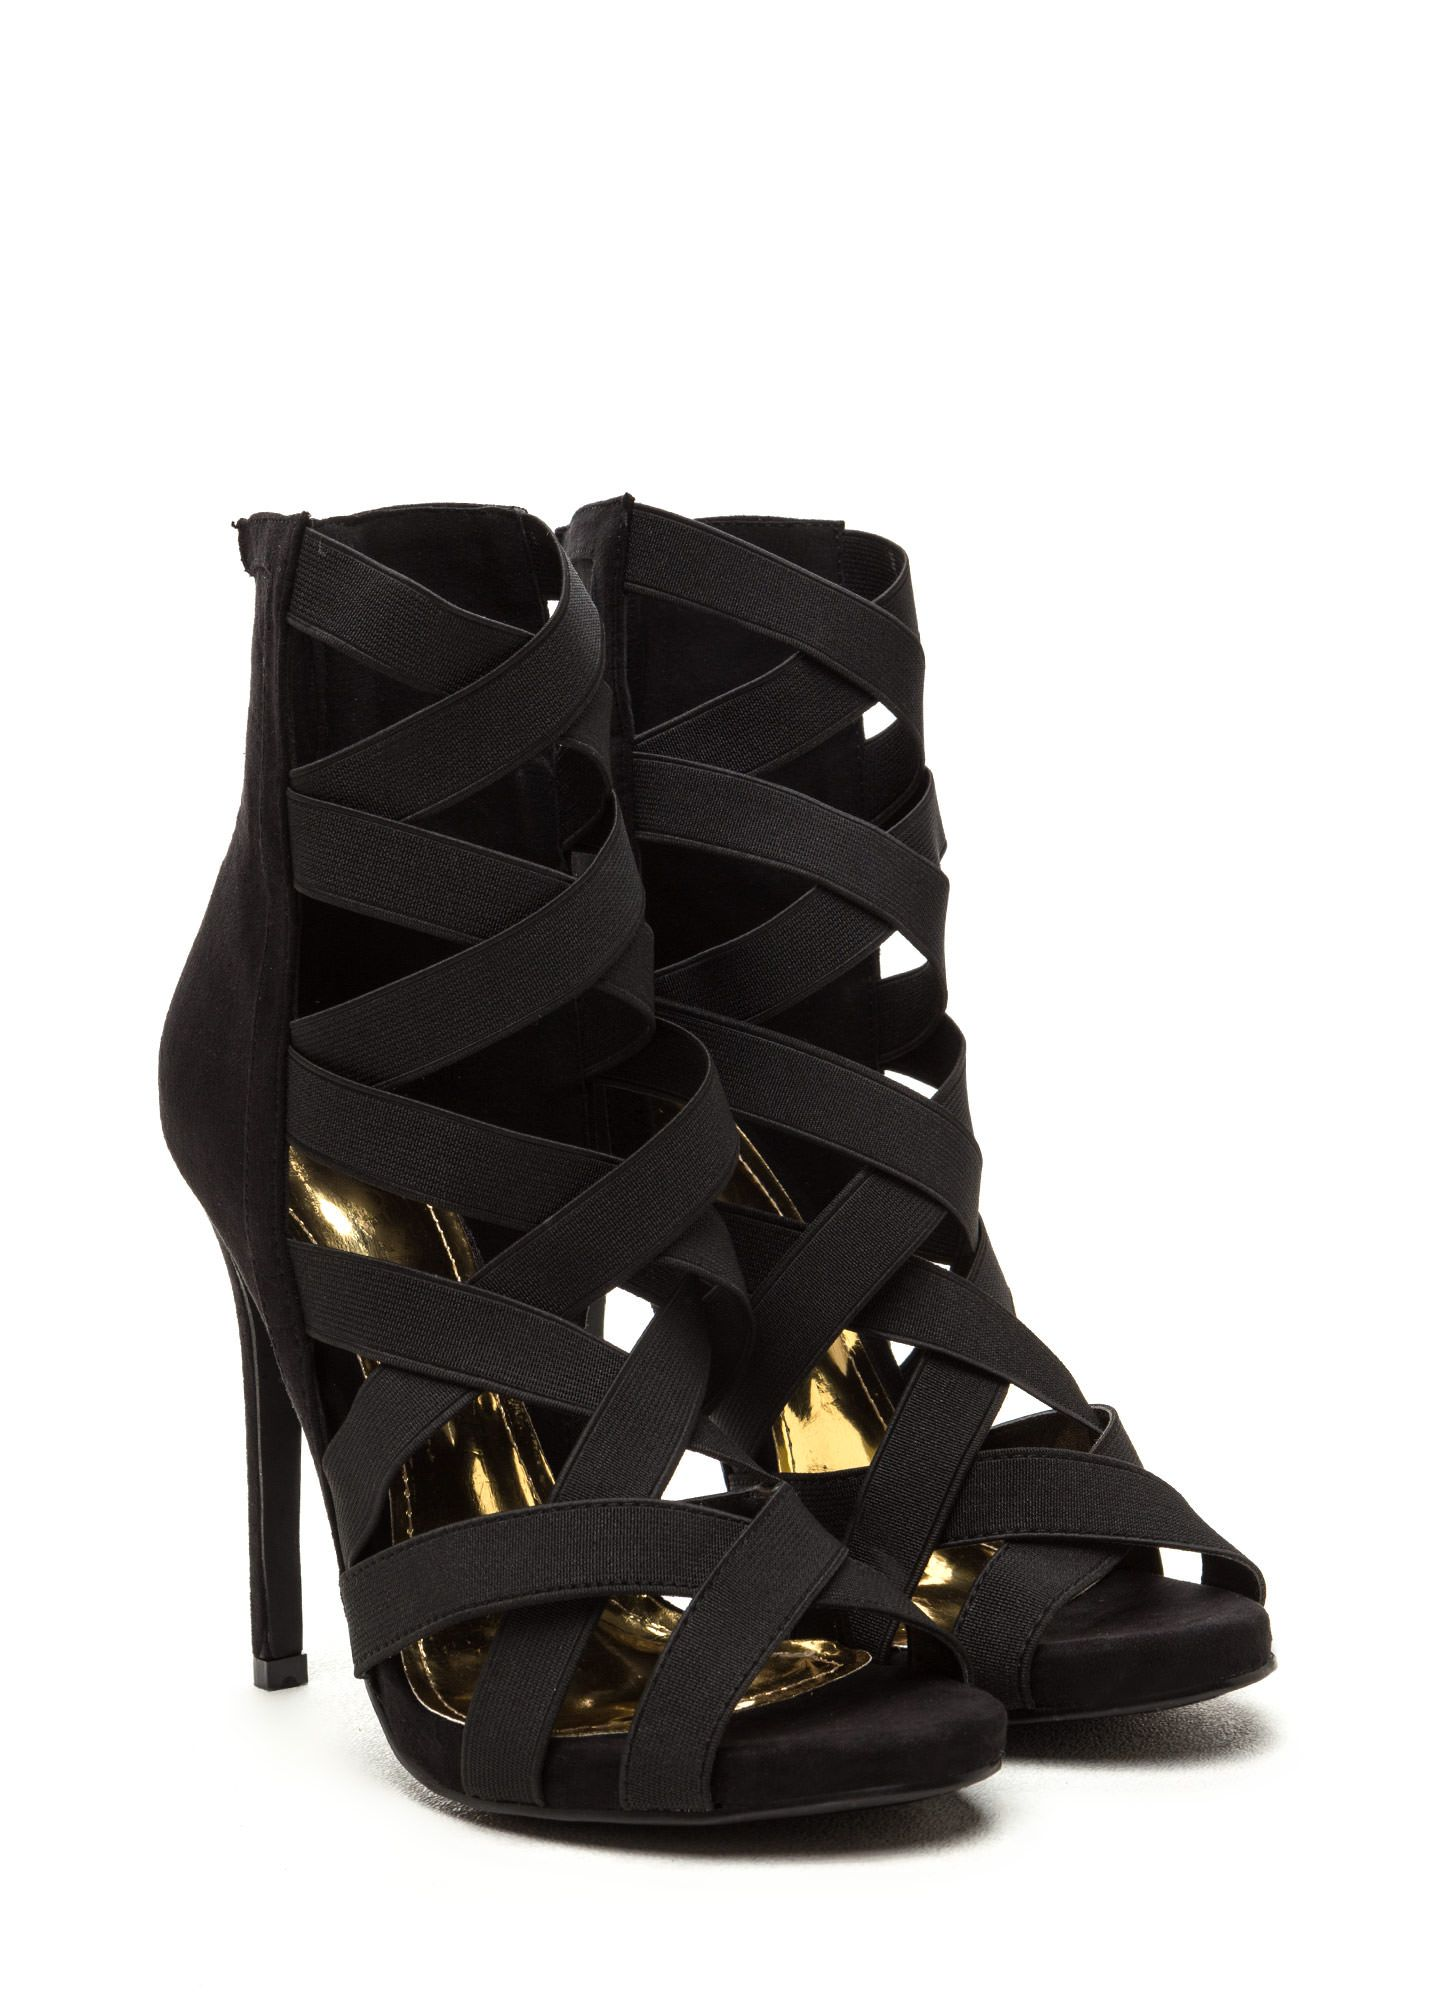 Night Life Caged Faux Suede Heels BLACK OLIVE BLUE RED TAUPE - GoJane.com  Fekete 8bb0501ada